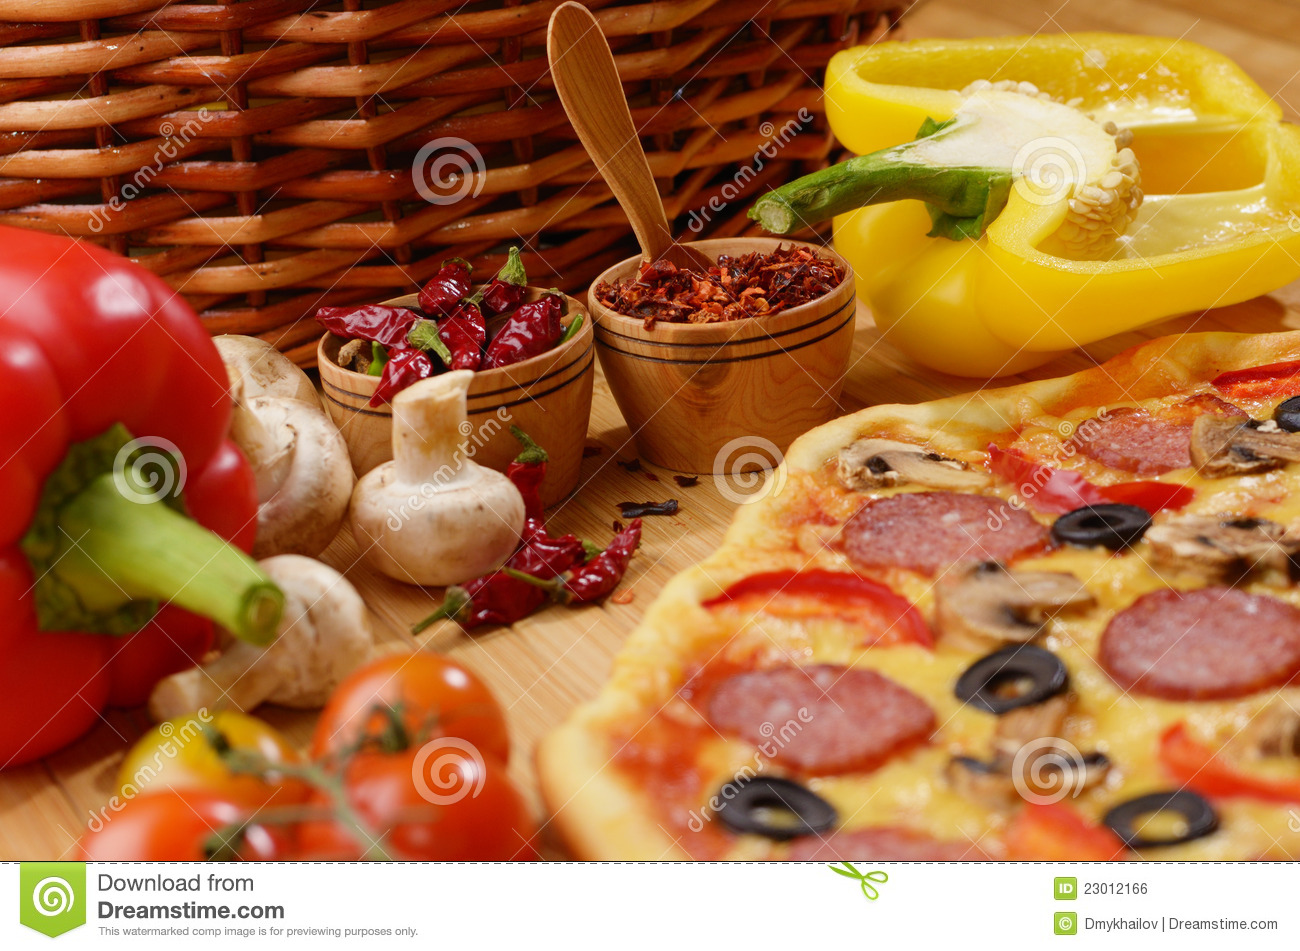 Royalty free stock image pizza on the table image 23012166 for Table a pizza